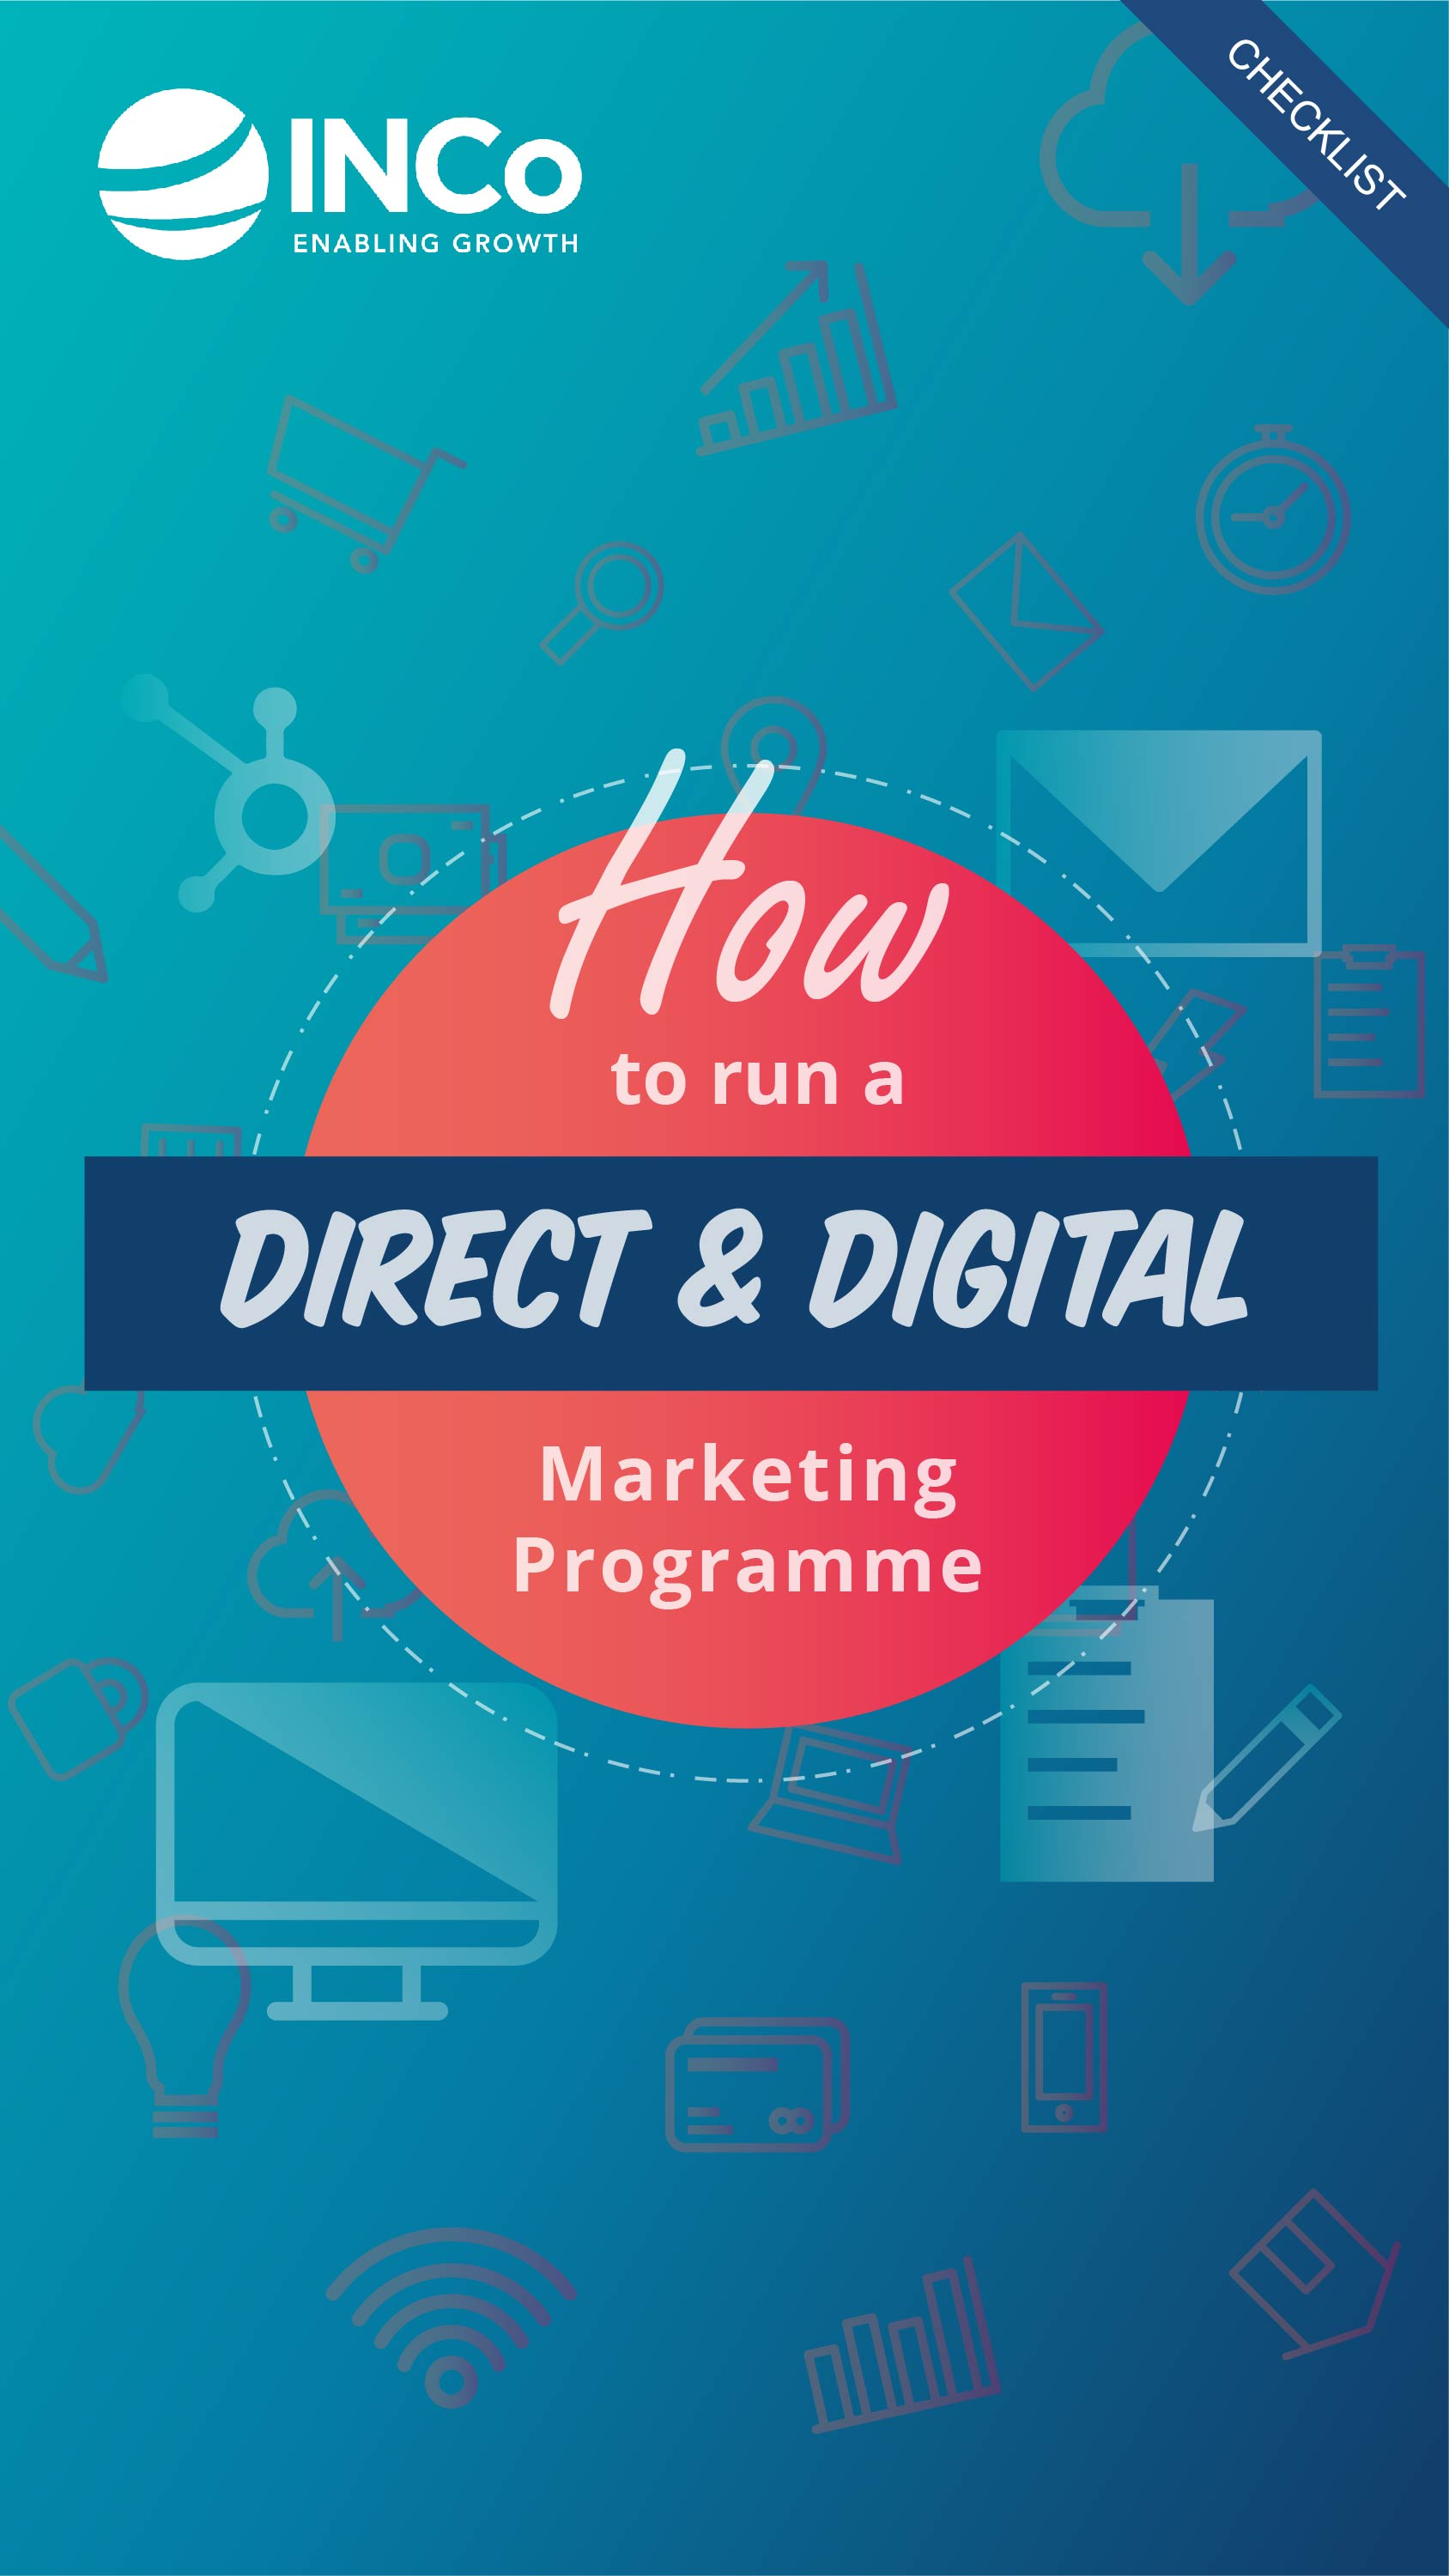 INCo-How to Run a Direct & Digital Marketing Programme Checklist-Cover-Portrait-1